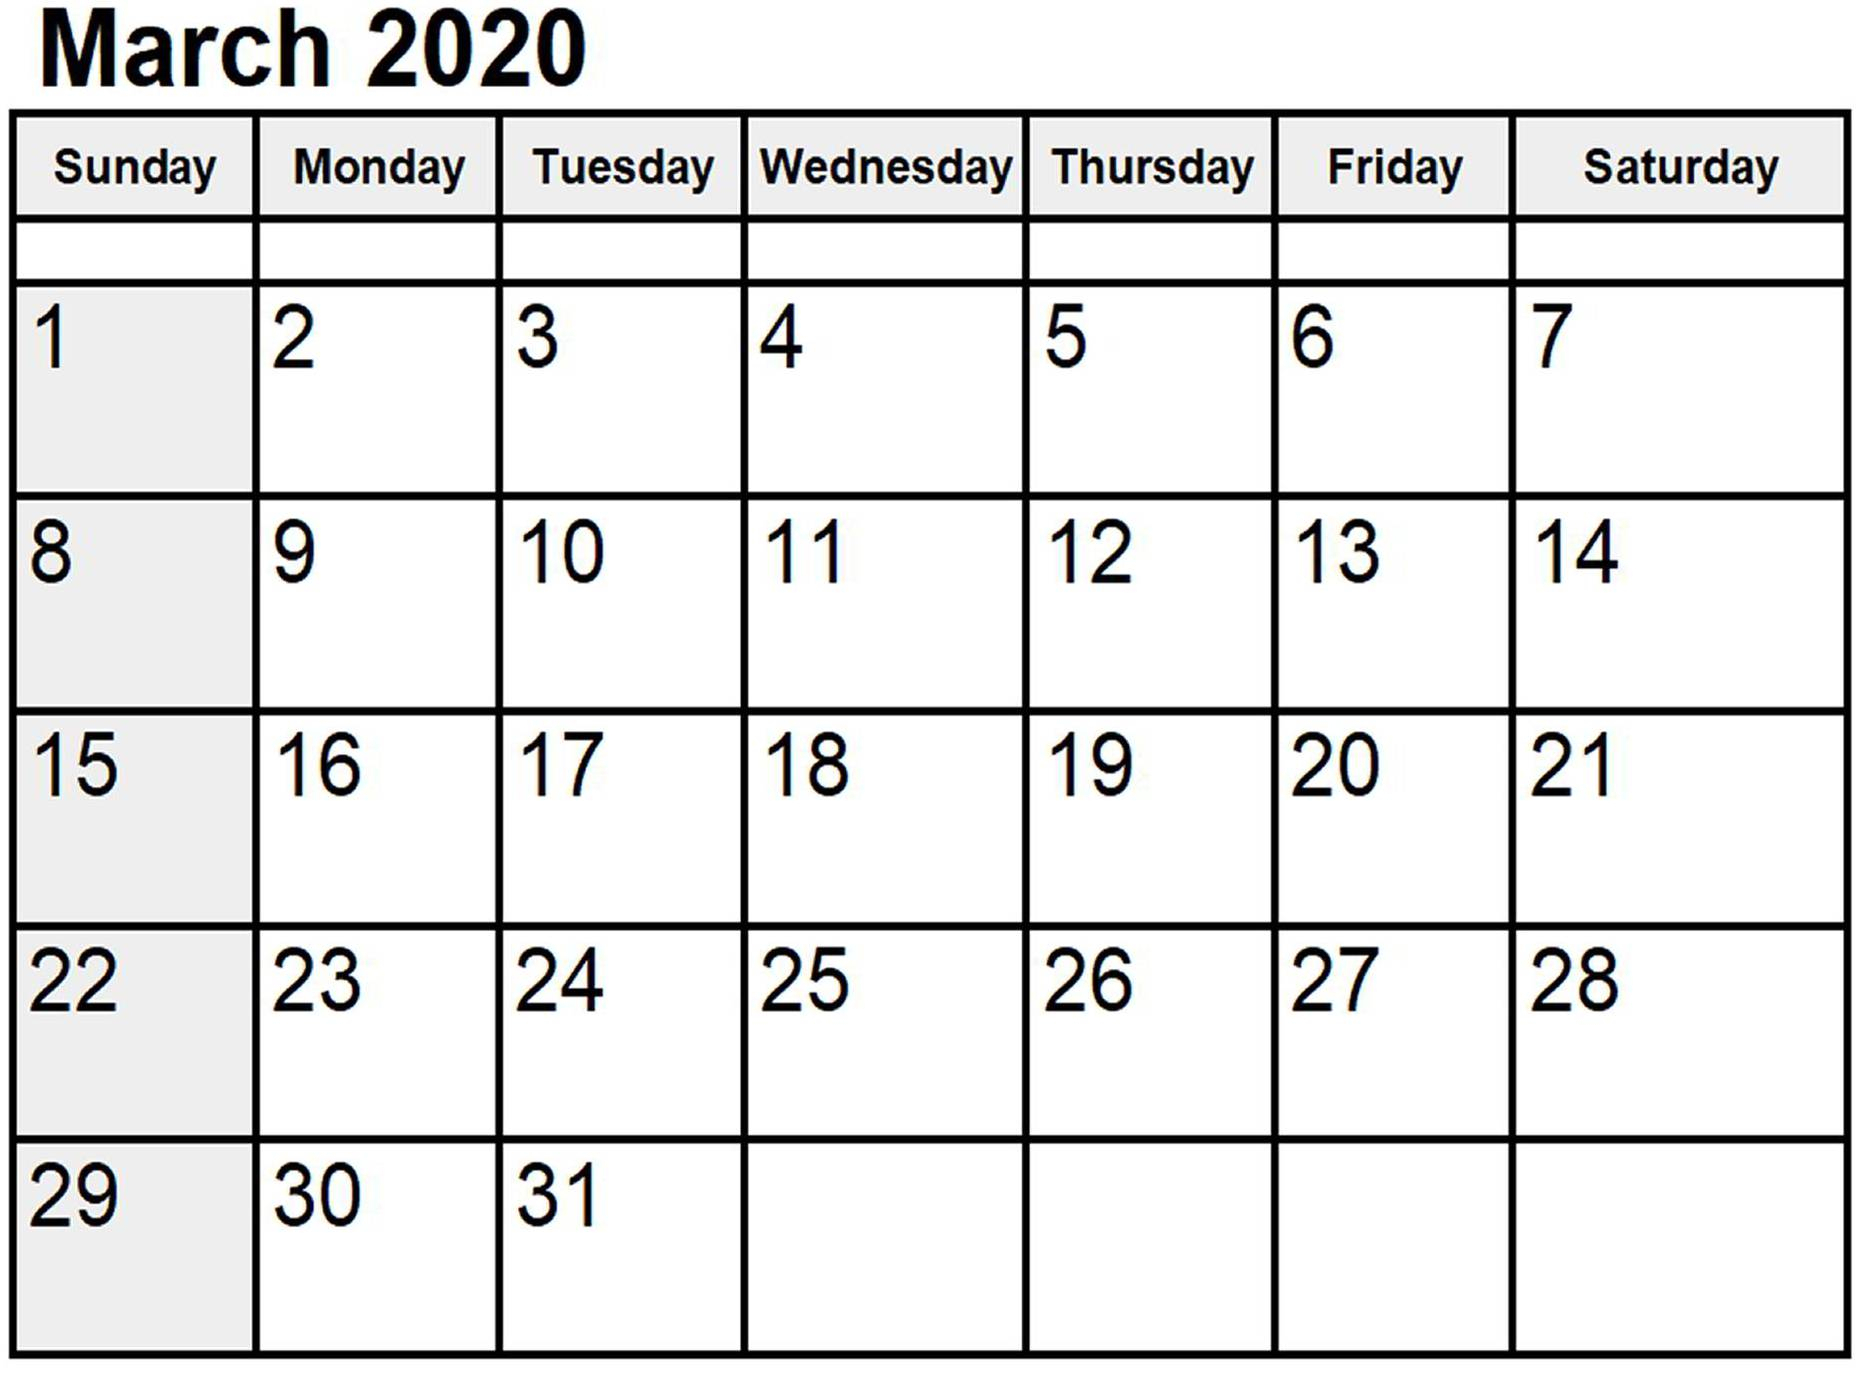 Free March 2020 Calendar Australia Template With Holidays for 2020 Calendar Australian